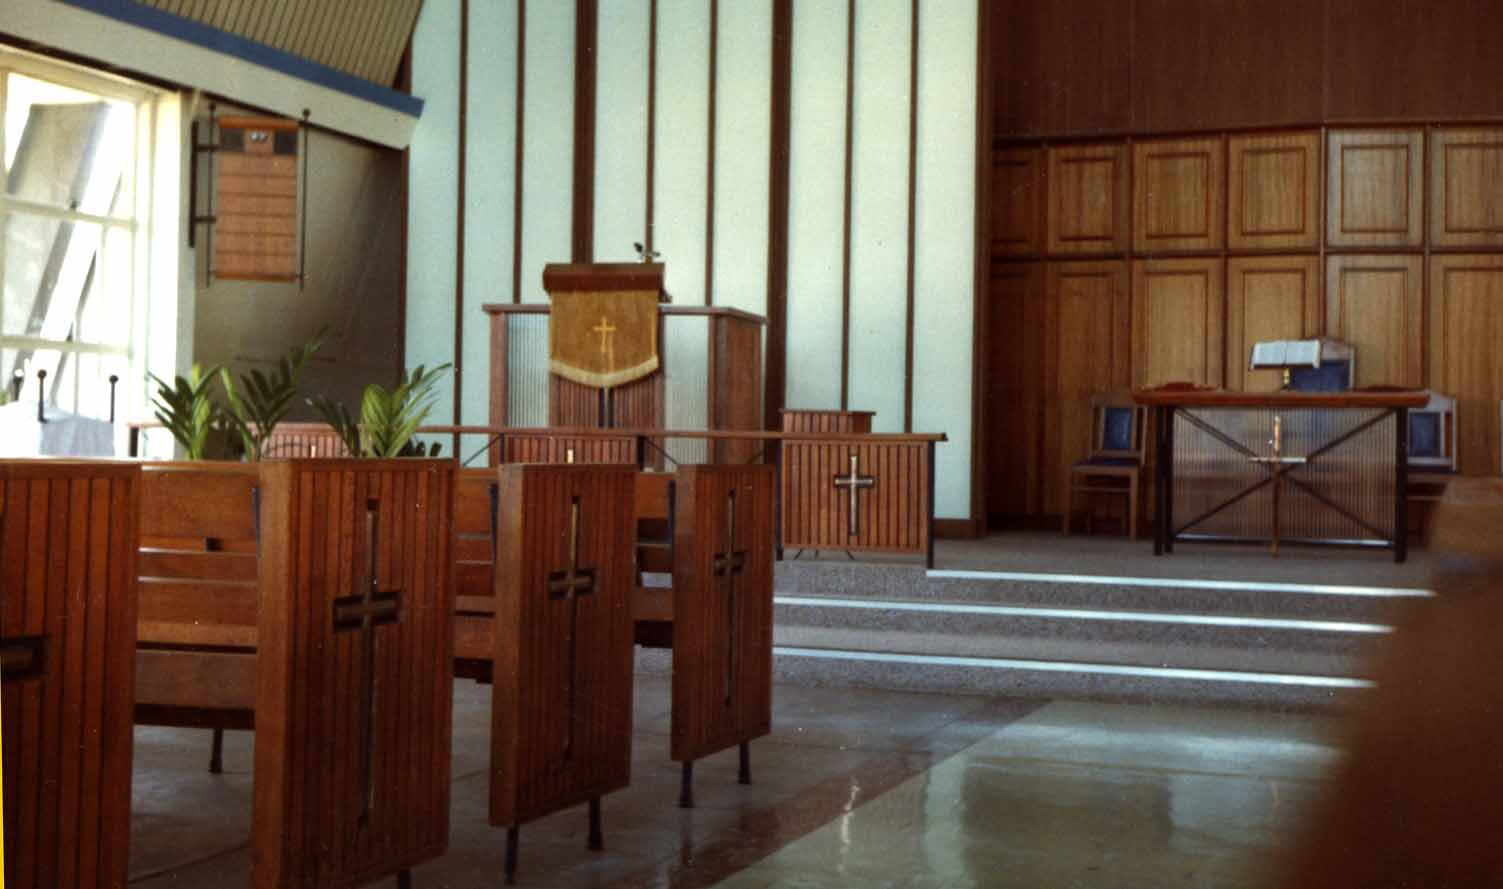 Darwin church  Pic courtesy of Mike Brown